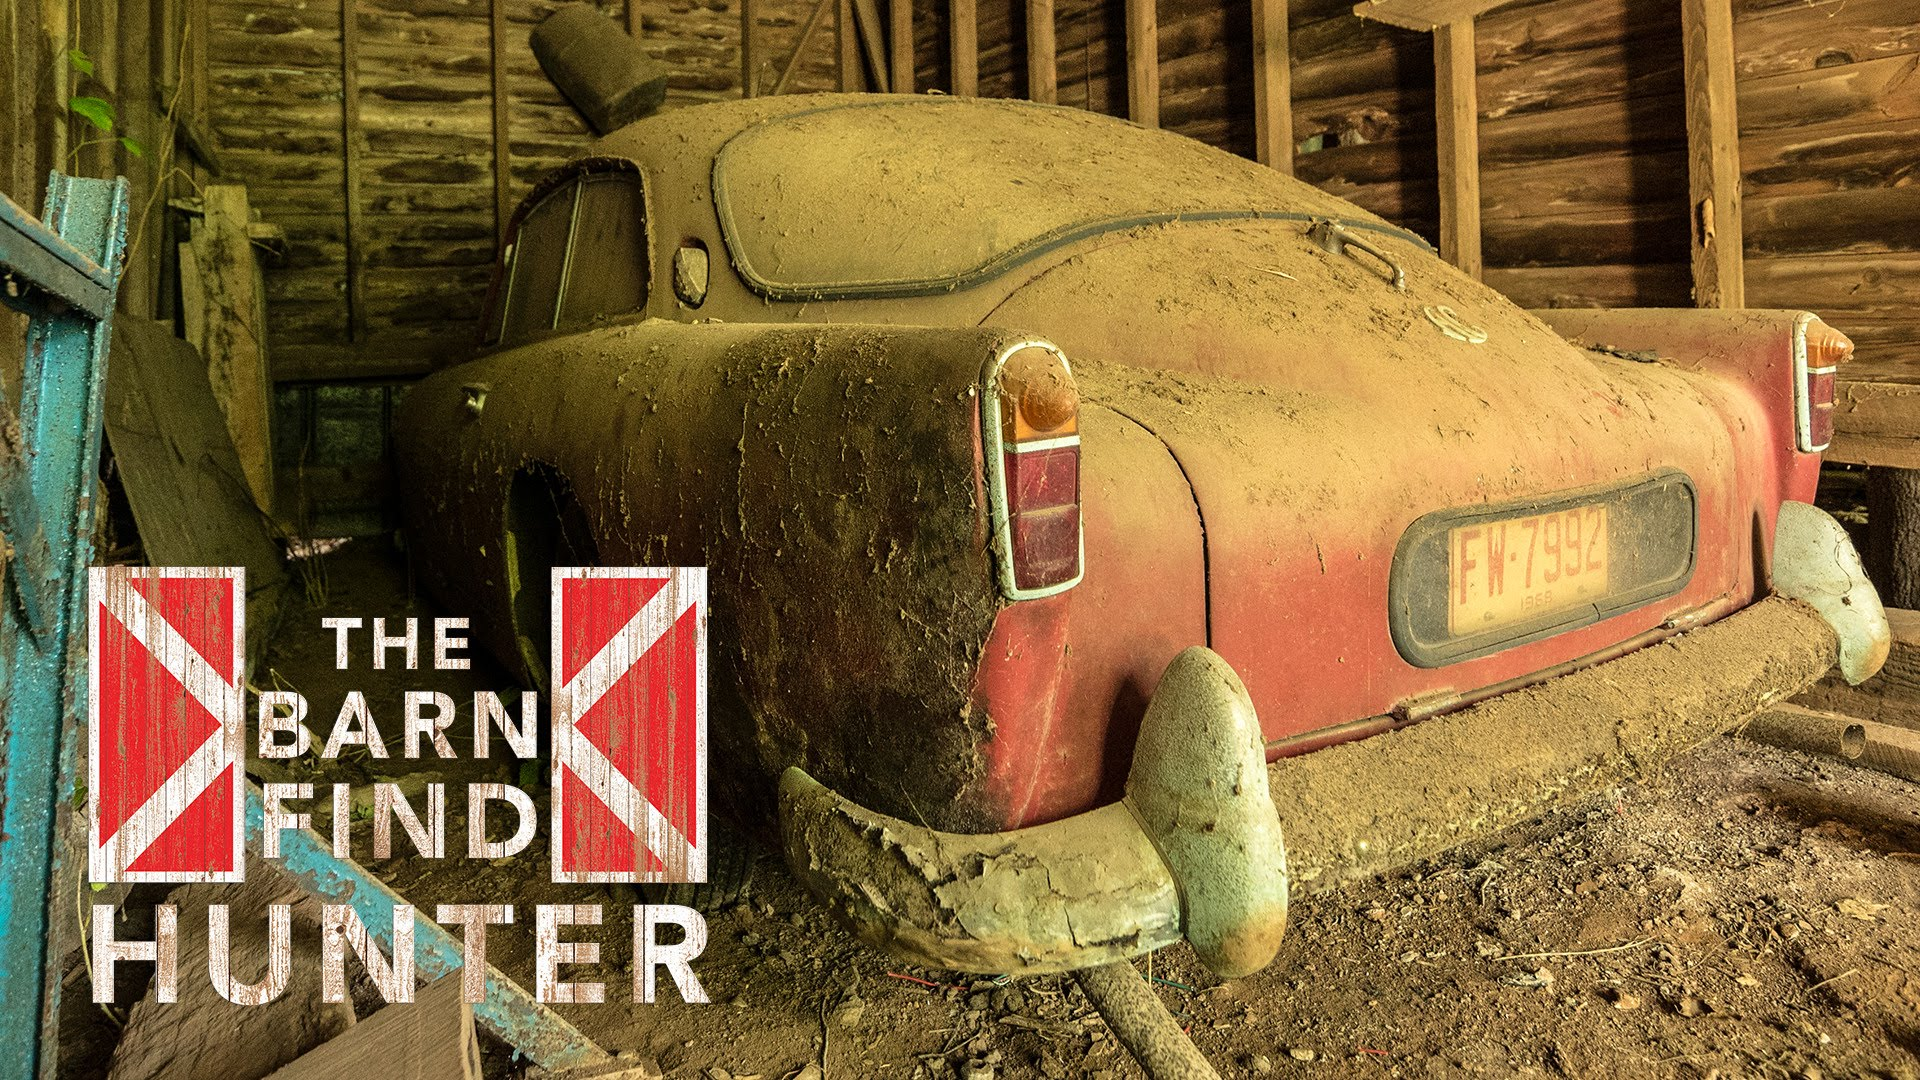 Check Out The DUST In This Barn Find Hunter From North Carolina